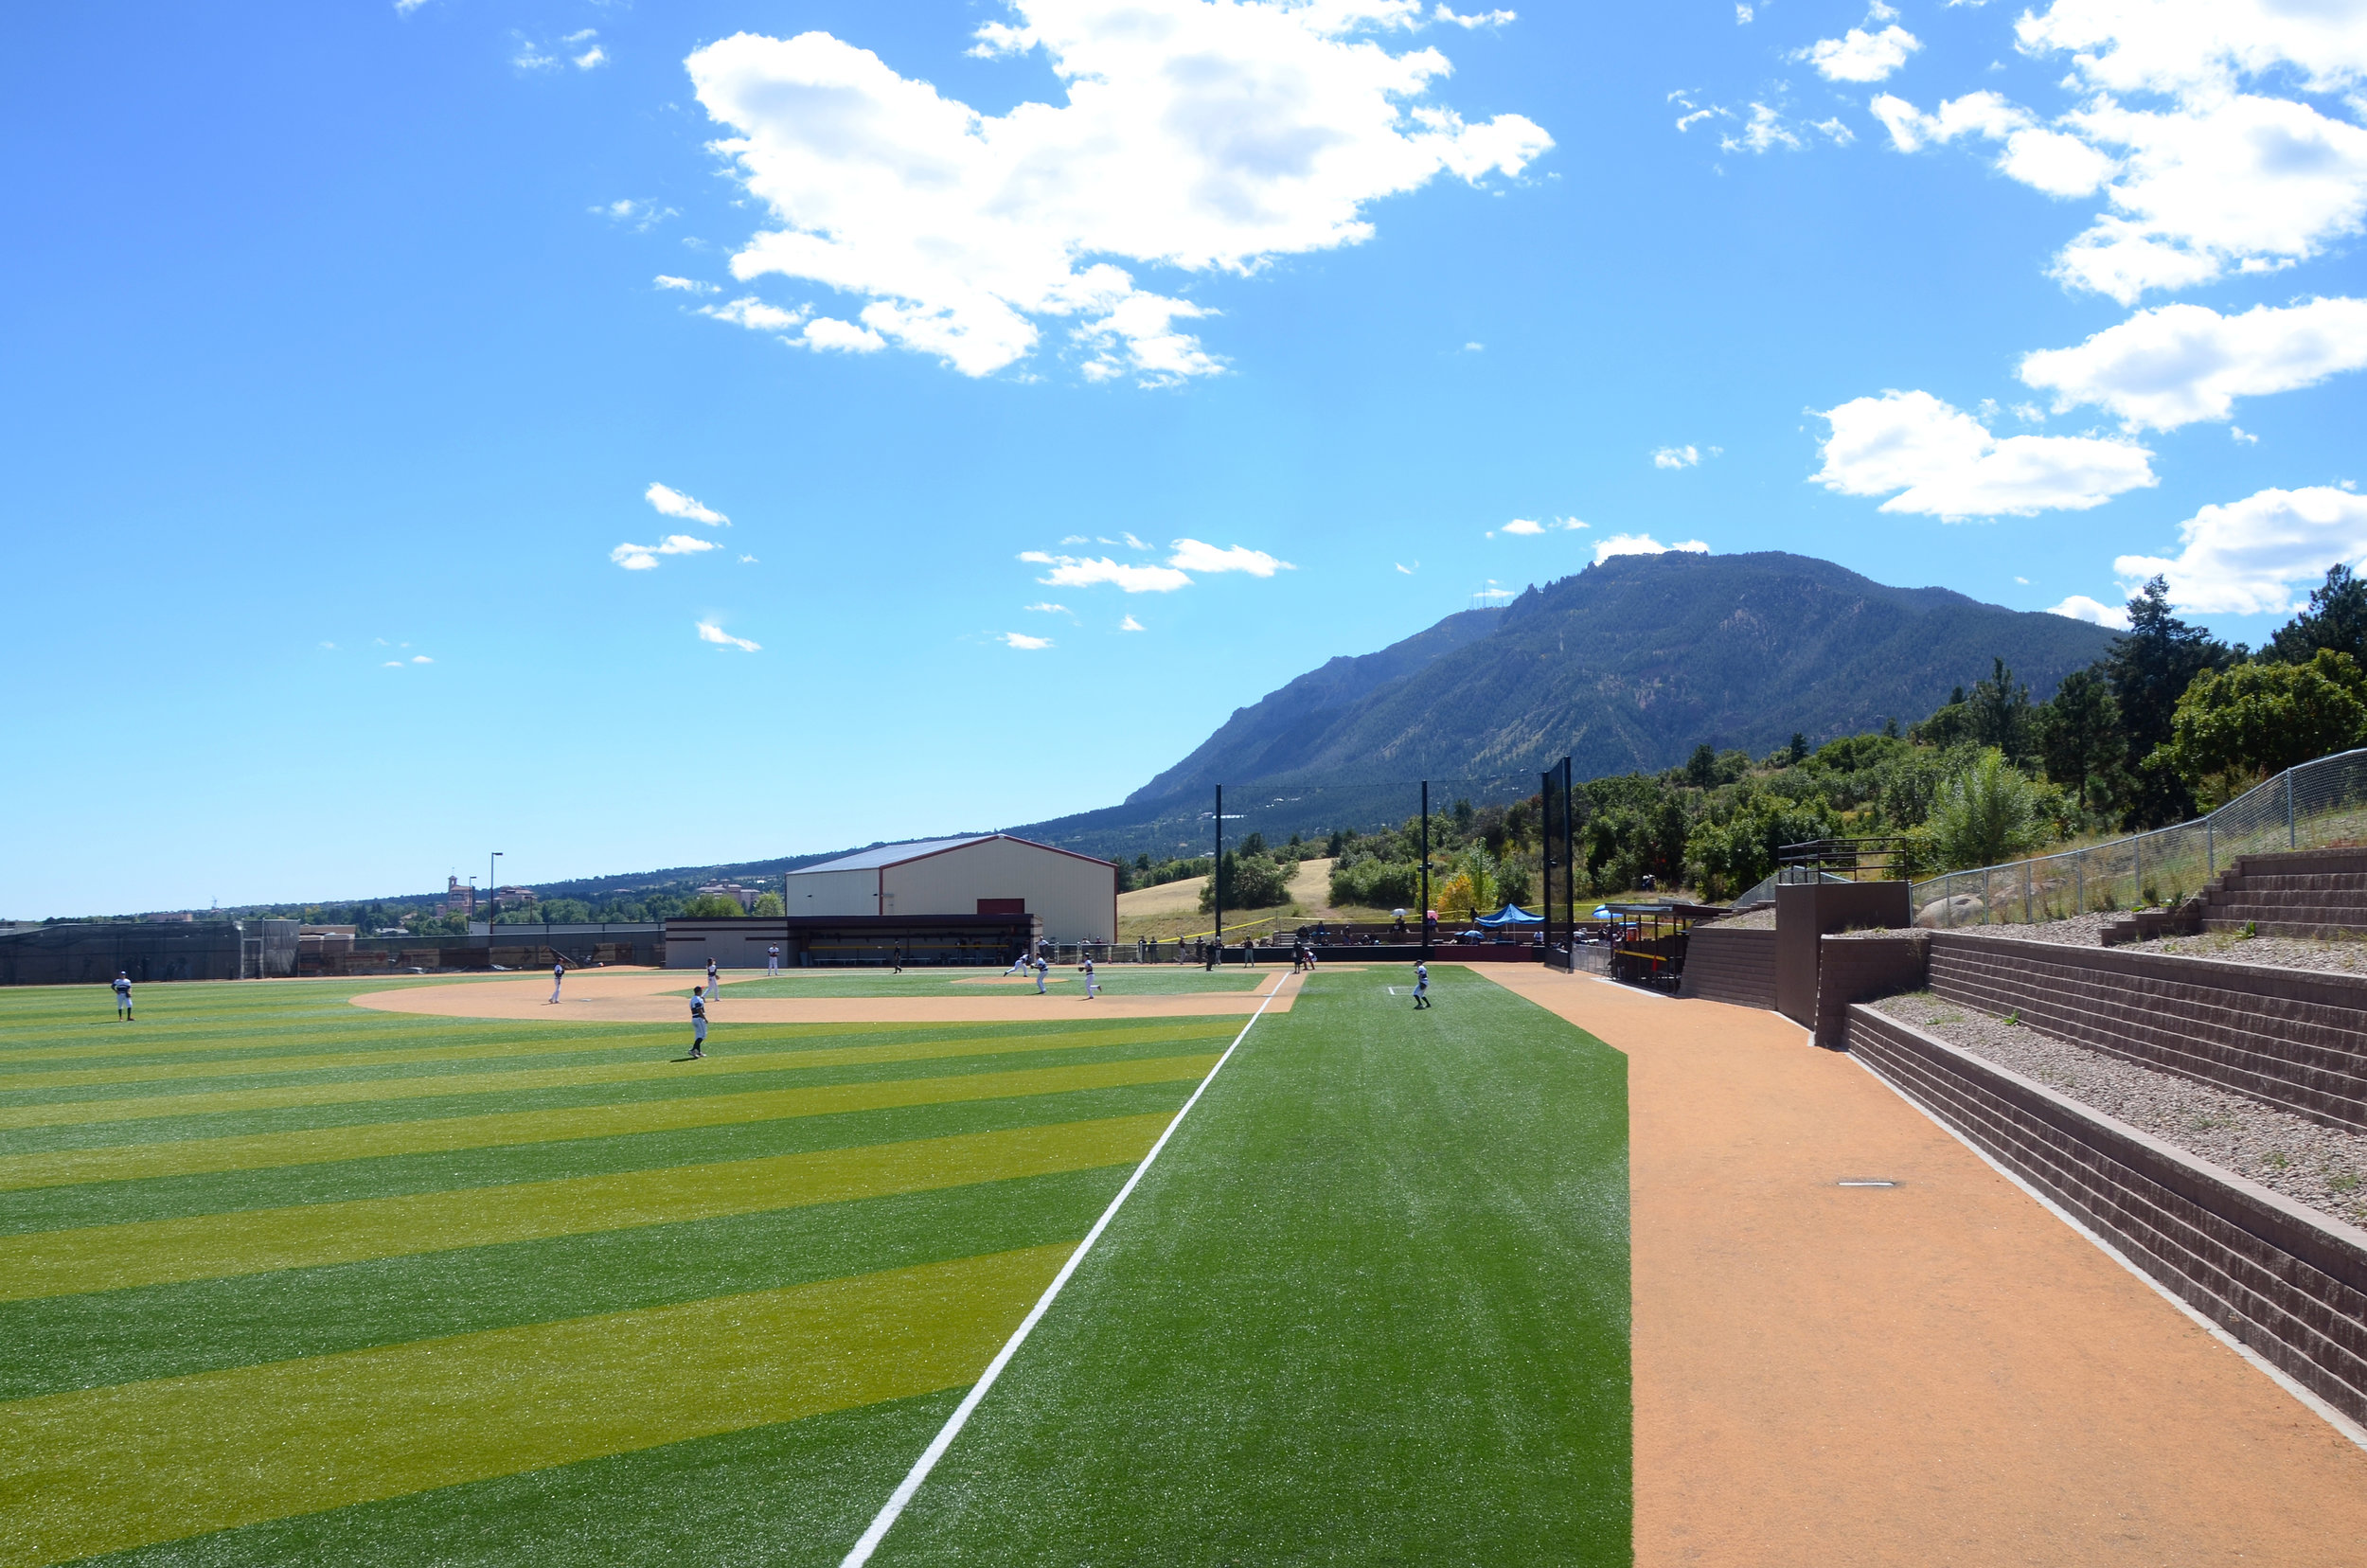 The relocated baseball field now sits on the West slope of the site, creating sweeping views of the city nestled against the stunning mountainside.